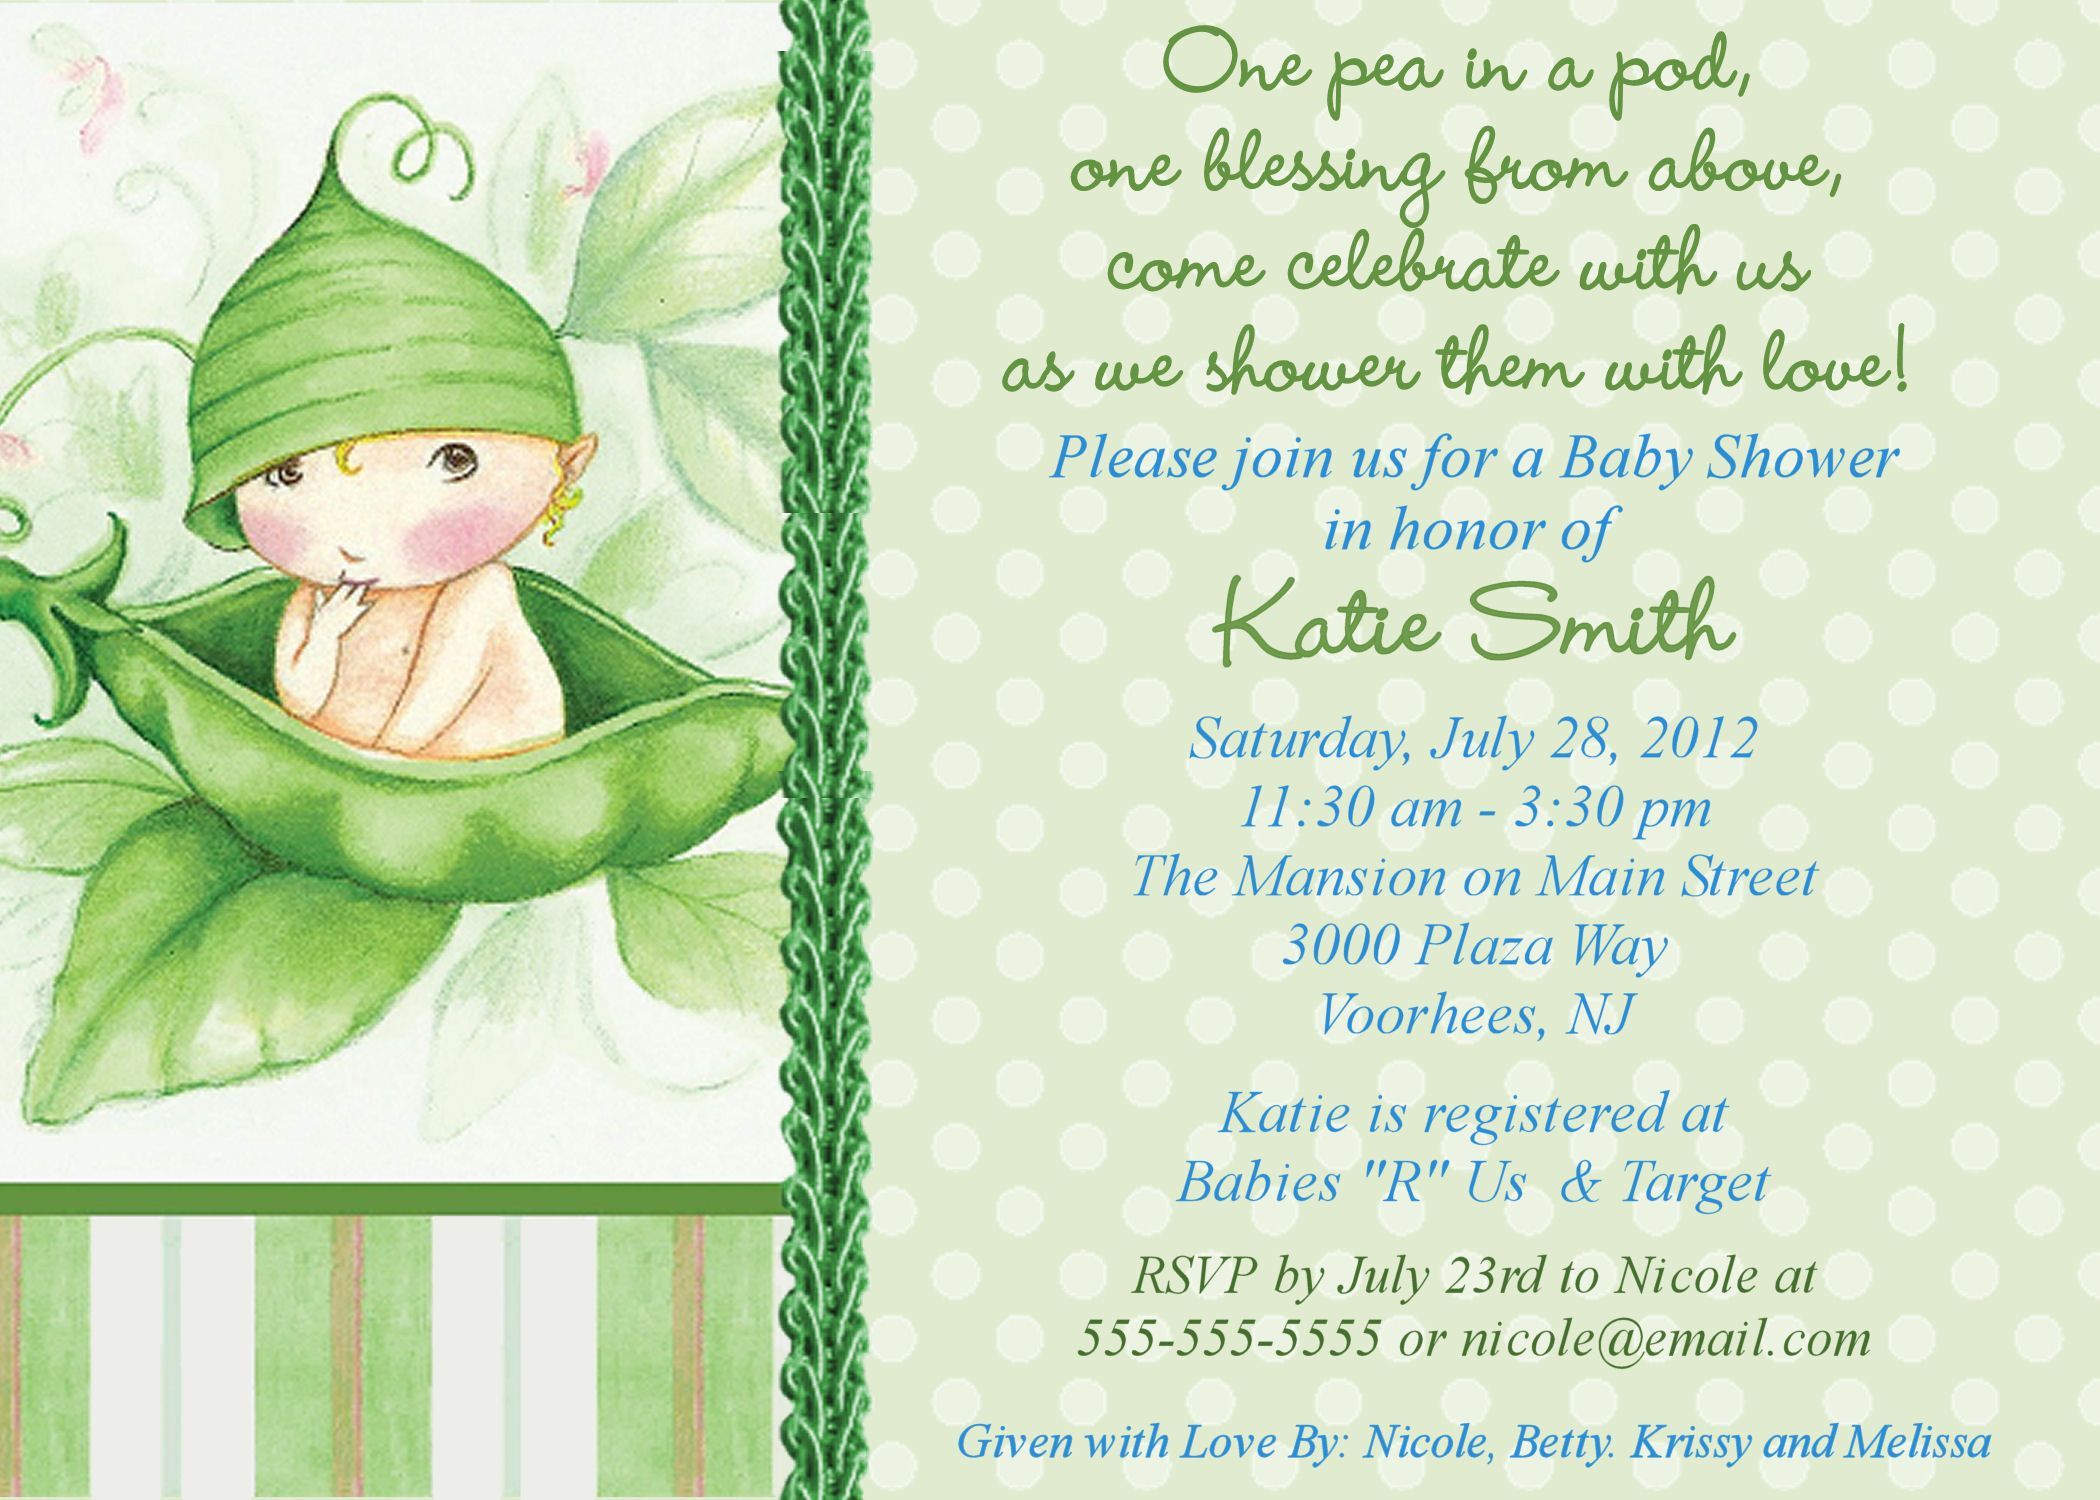 Free Online Baby Shower Invitations | Baby Shower Invitation Sample |  Invitation Templates  Baby Shower Invite Samples